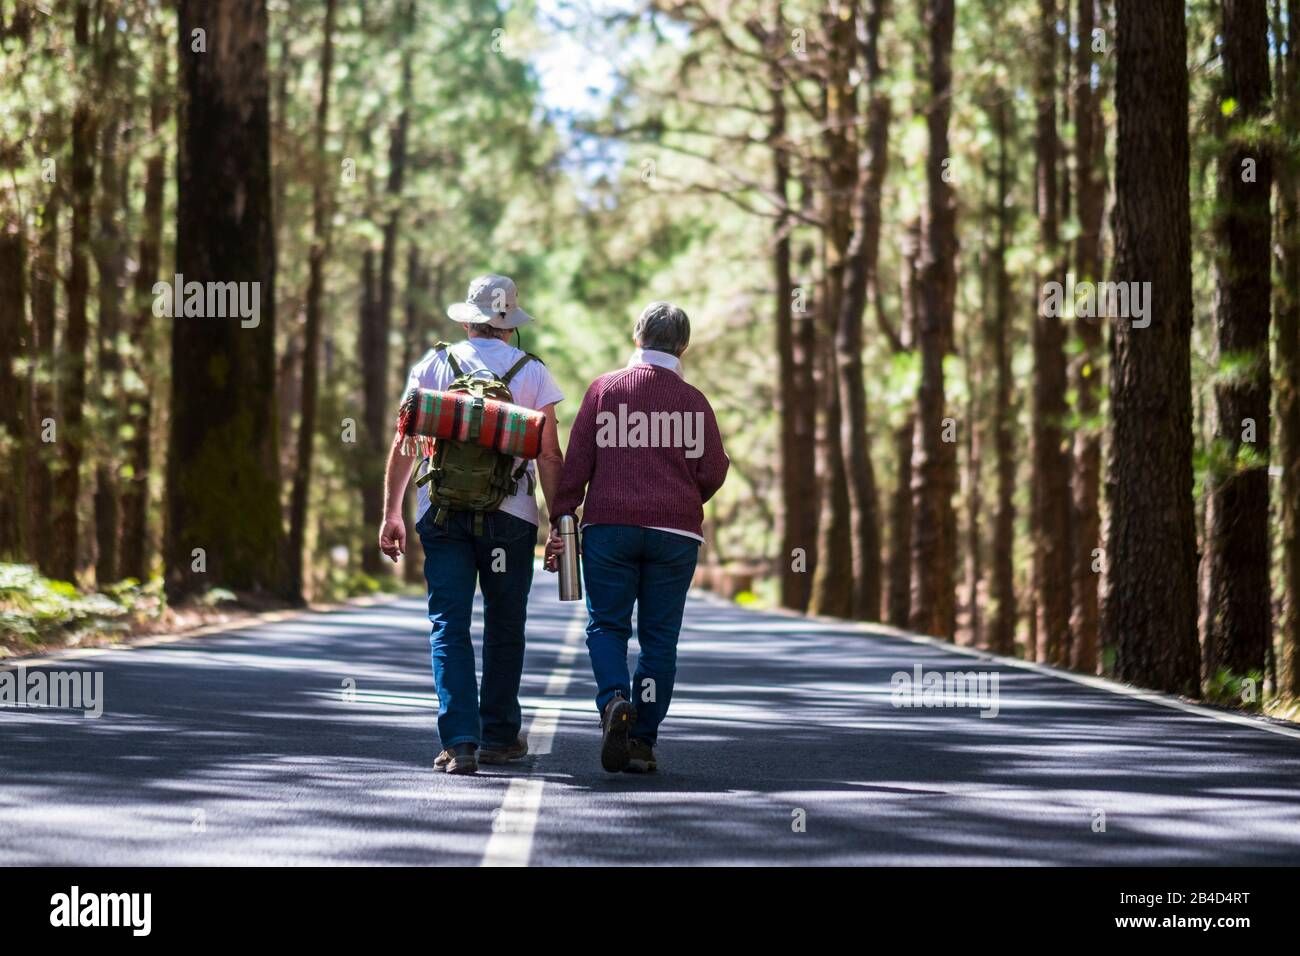 Travel lifestyle for old senior couple walking together in the middle of the road with high trees forest on both sides - lifestyle and togetherness forever life concept - aged people Stock Photo